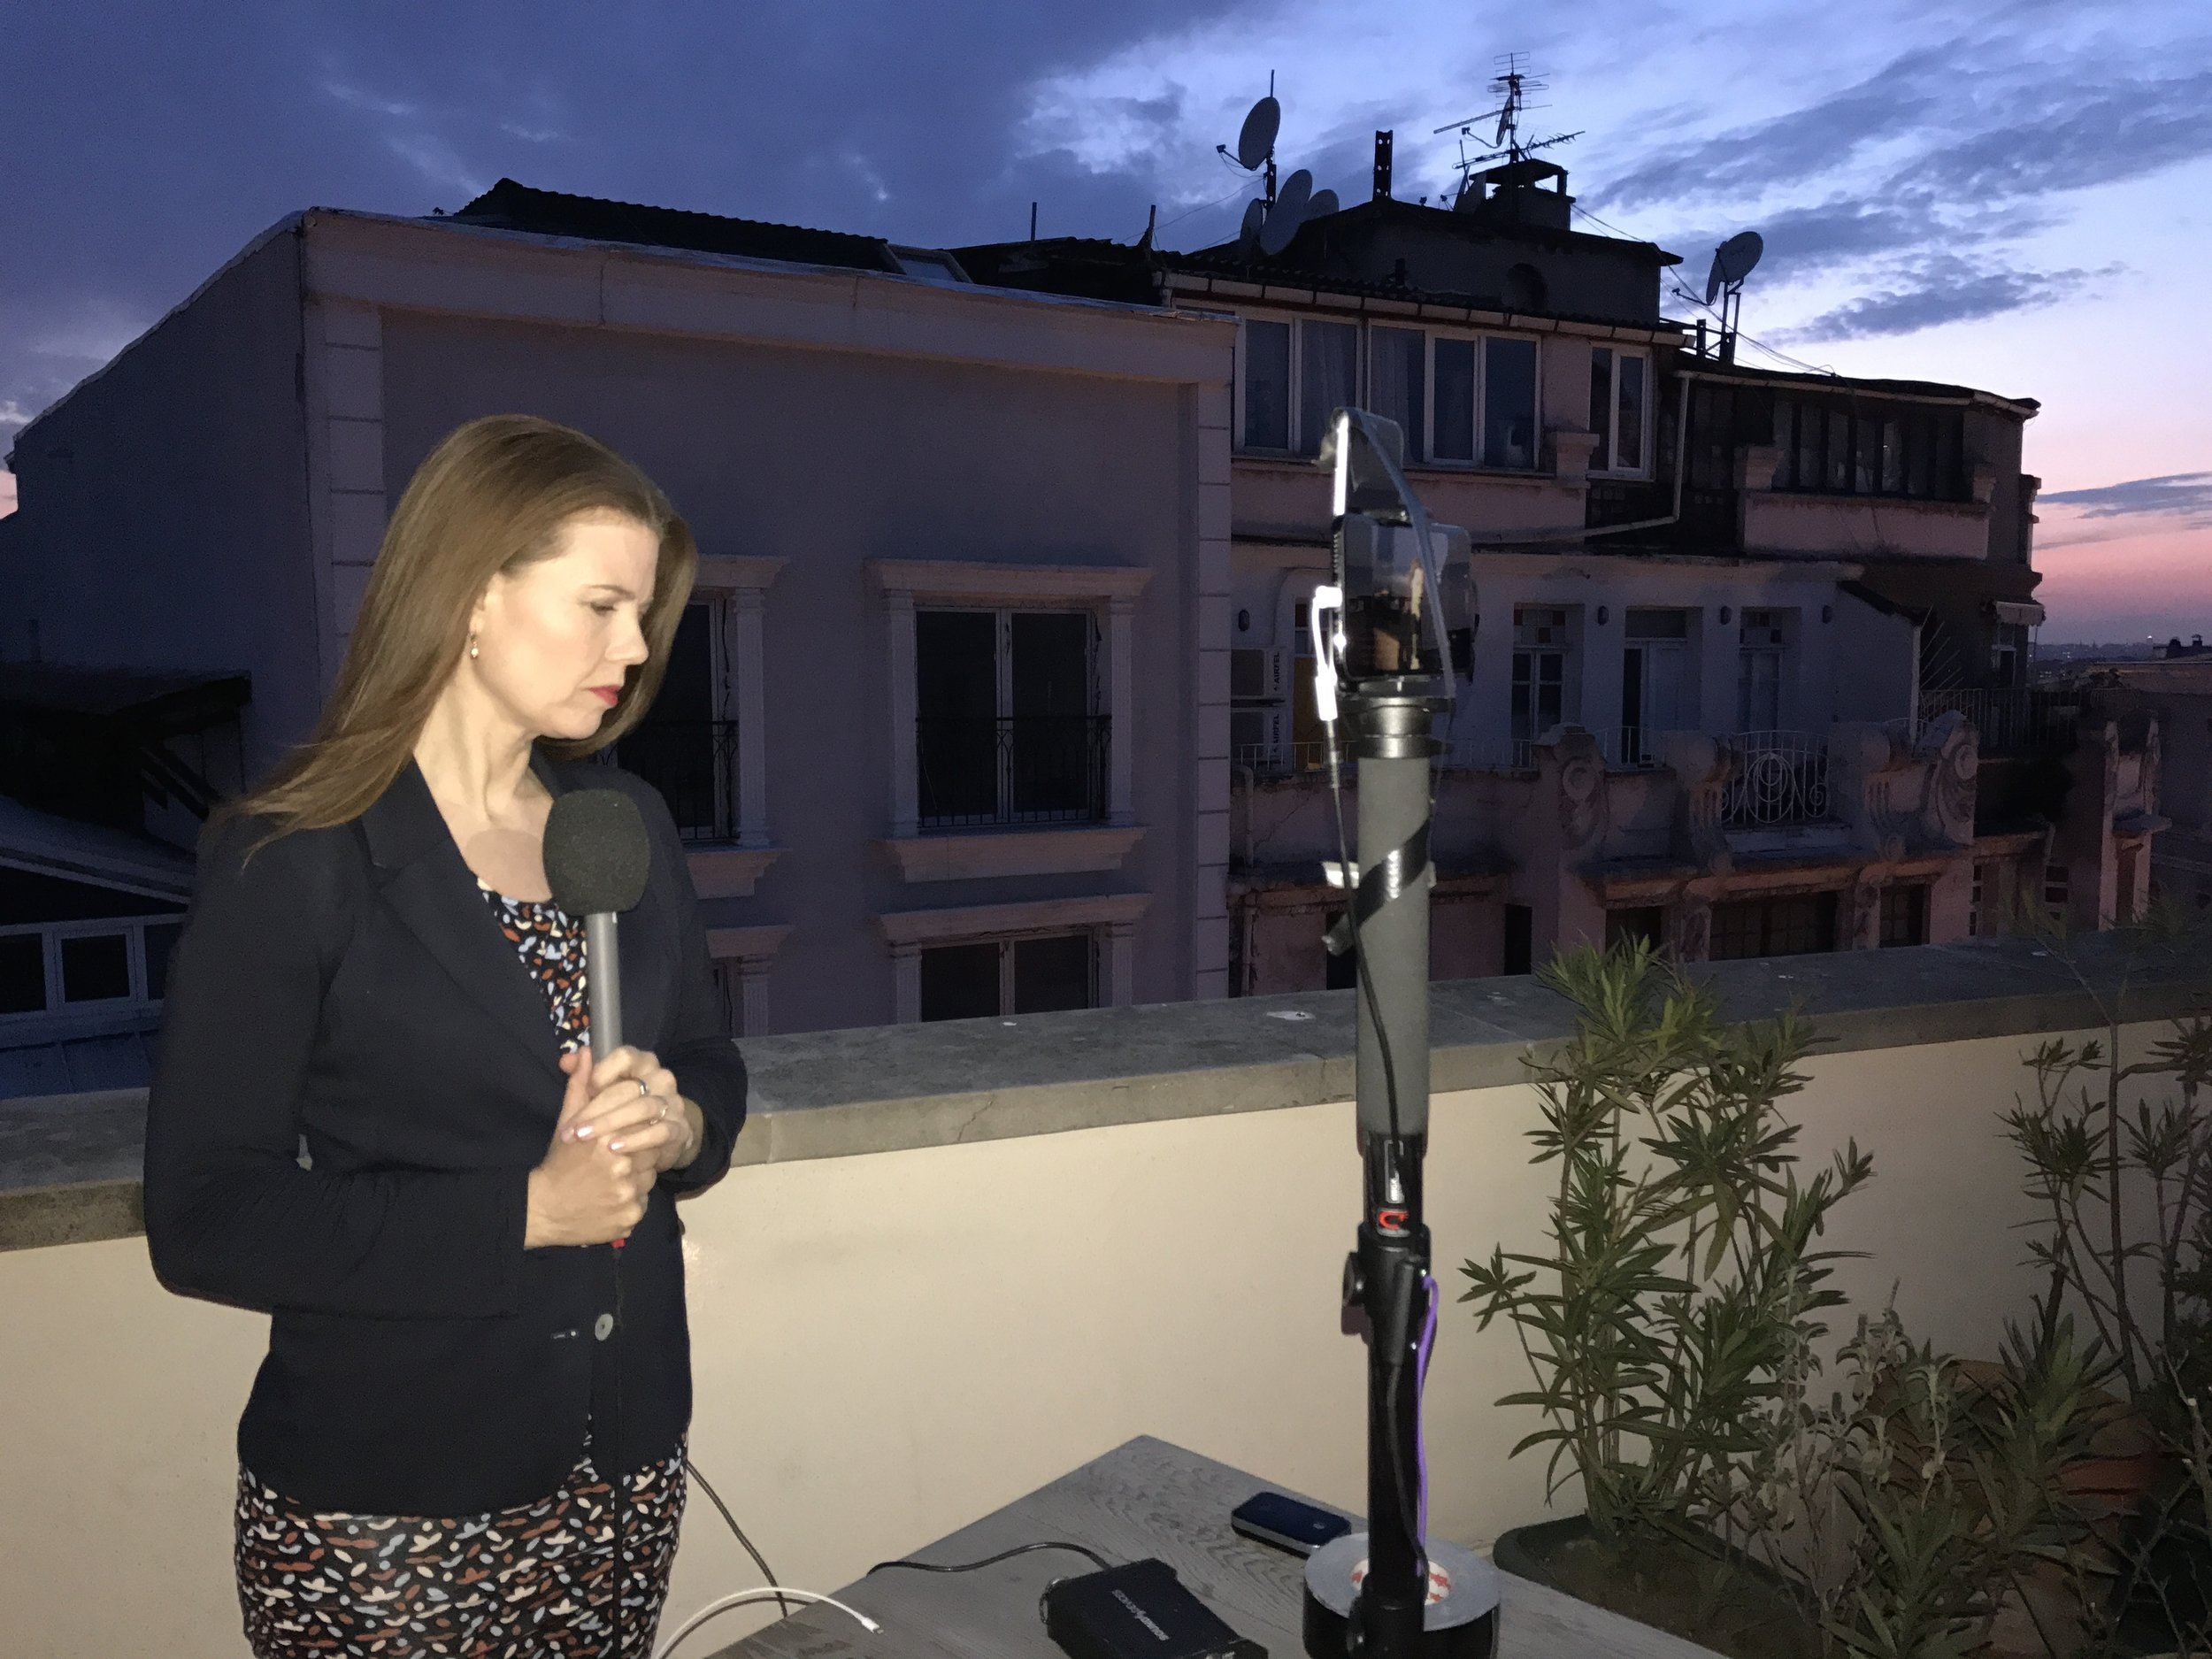 Preparing to go live for BBC News in Istanbul, Turkey reporting on the 2017 referendum.